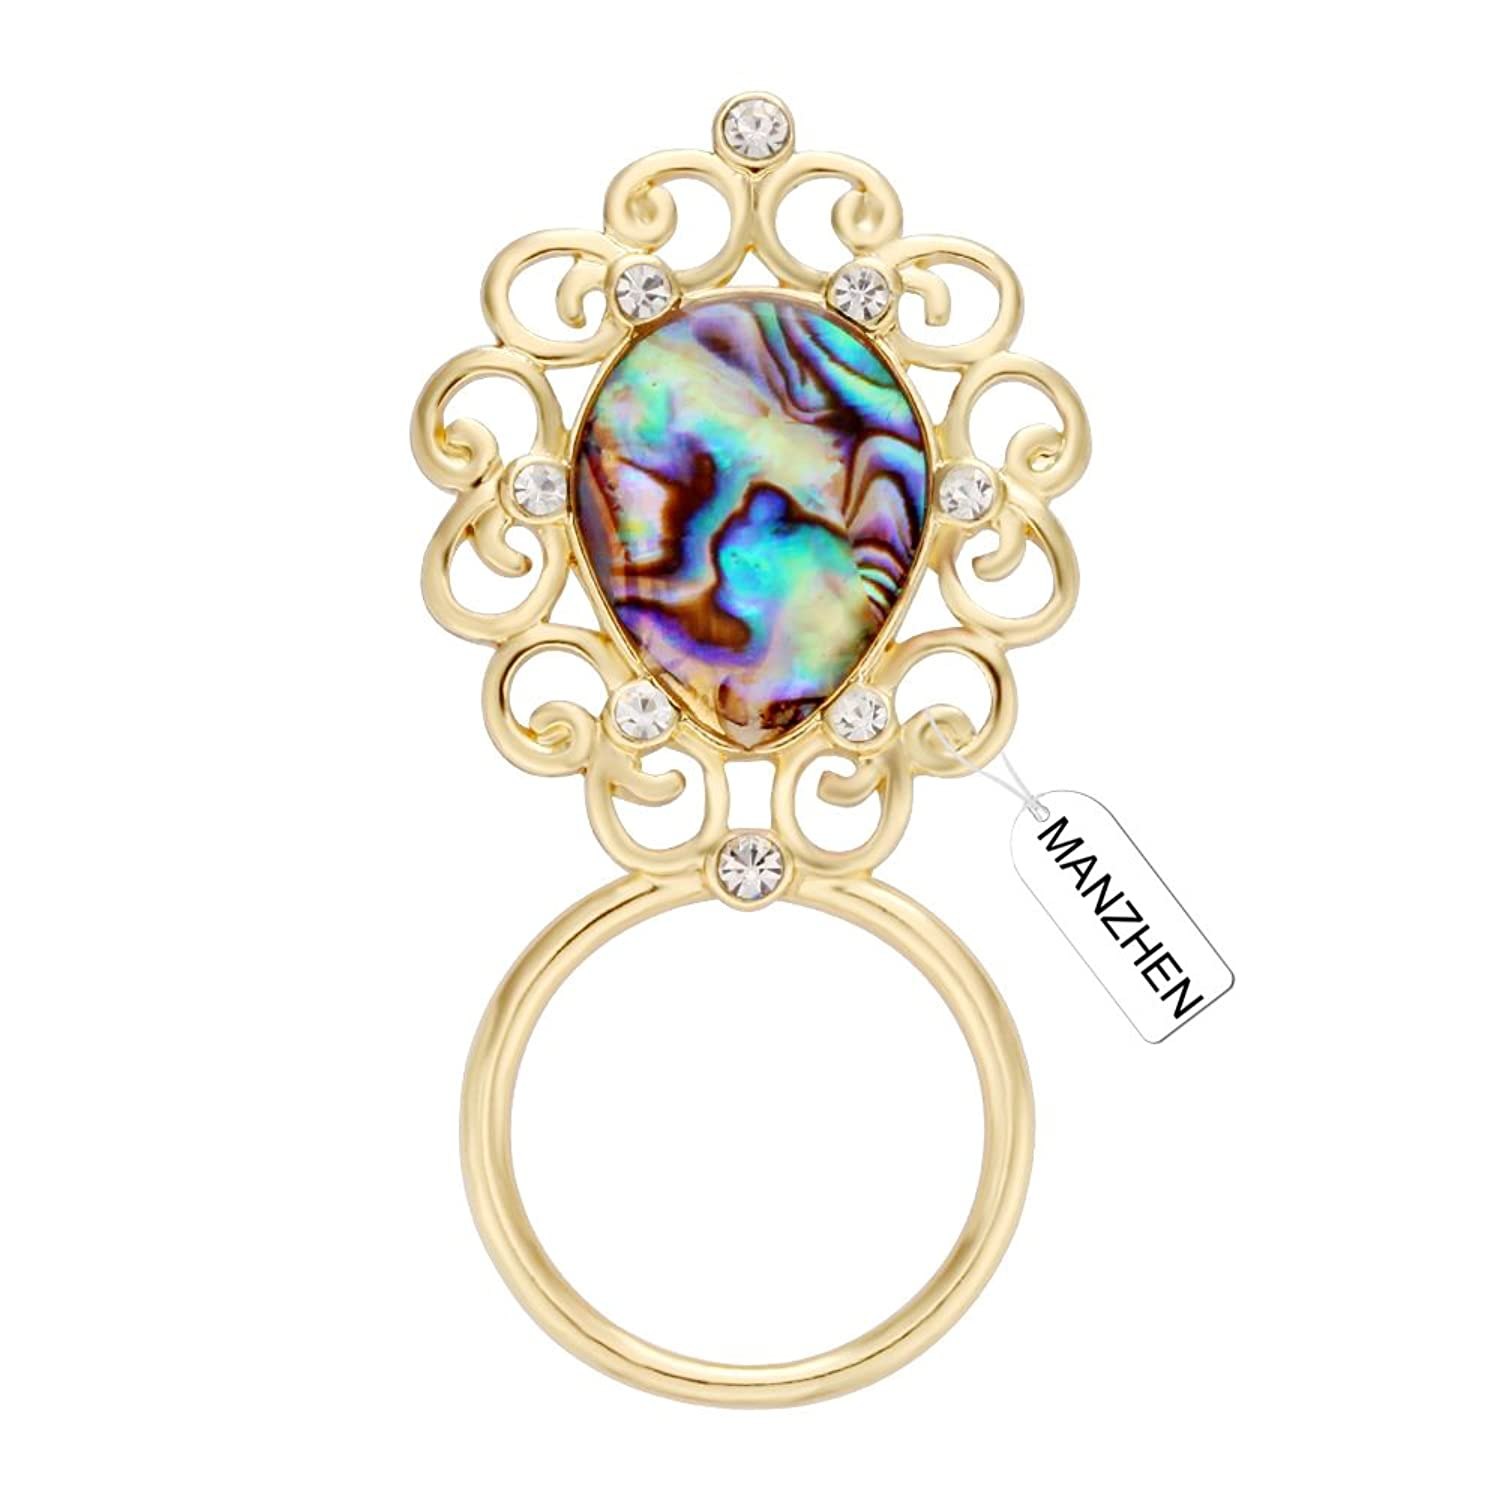 MANZHEN Delicate Abalone Shell Lace Flower Magnetic Eyeglass Holder Clip Brooch Jewelry